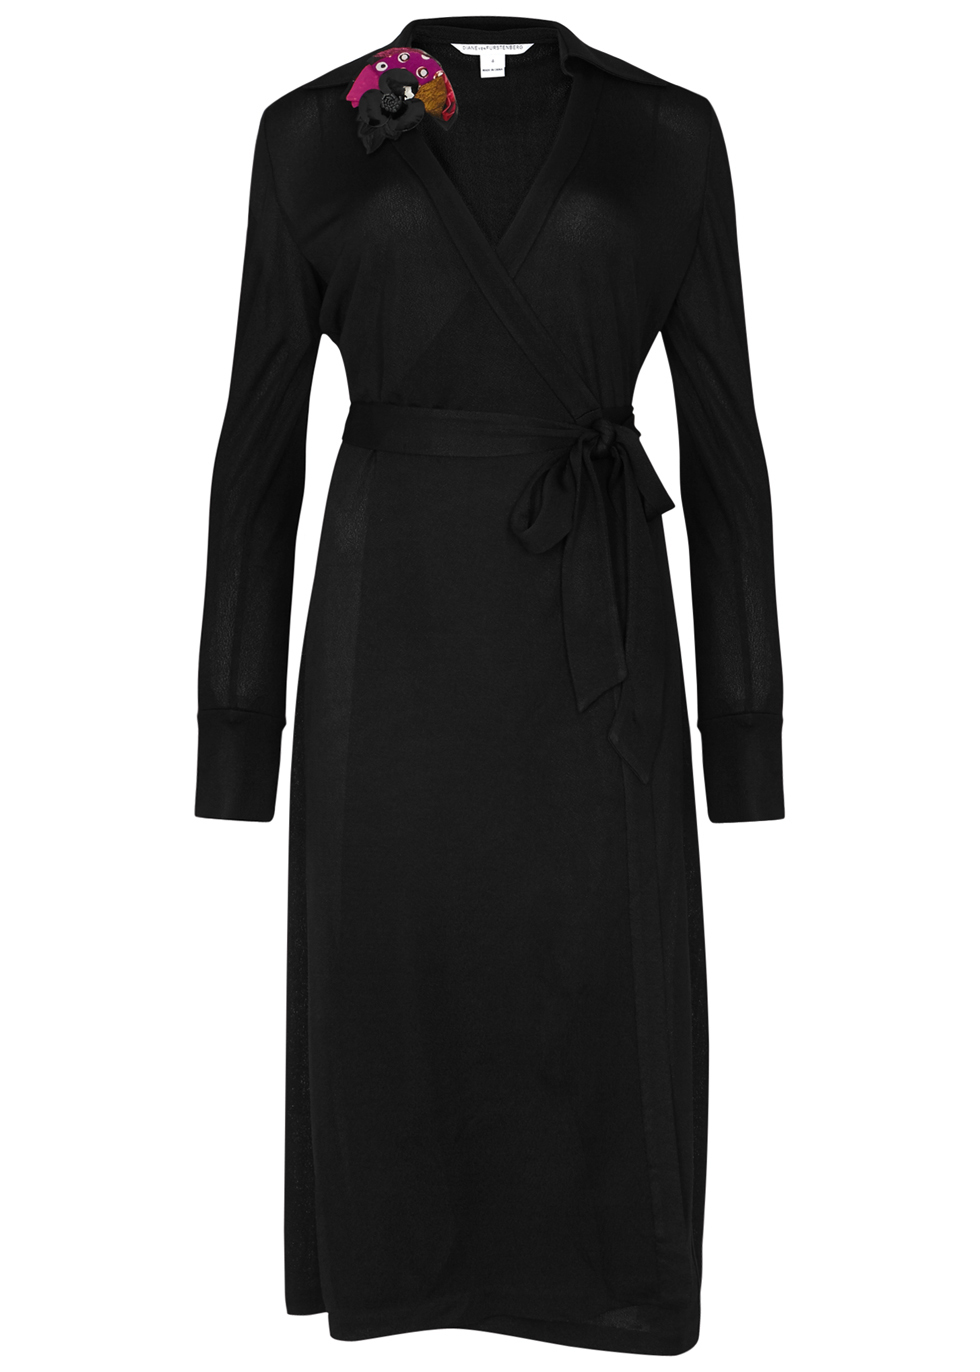 Cybil Black Jersey Wrap Dress - style: faux wrap/wrap; neckline: v-neck; pattern: plain; waist detail: belted waist/tie at waist/drawstring; predominant colour: black; length: on the knee; fit: body skimming; fibres: silk - mix; sleeve length: long sleeve; sleeve style: standard; pattern type: fabric; texture group: jersey - stretchy/drapey; occasions: creative work; season: a/w 2016